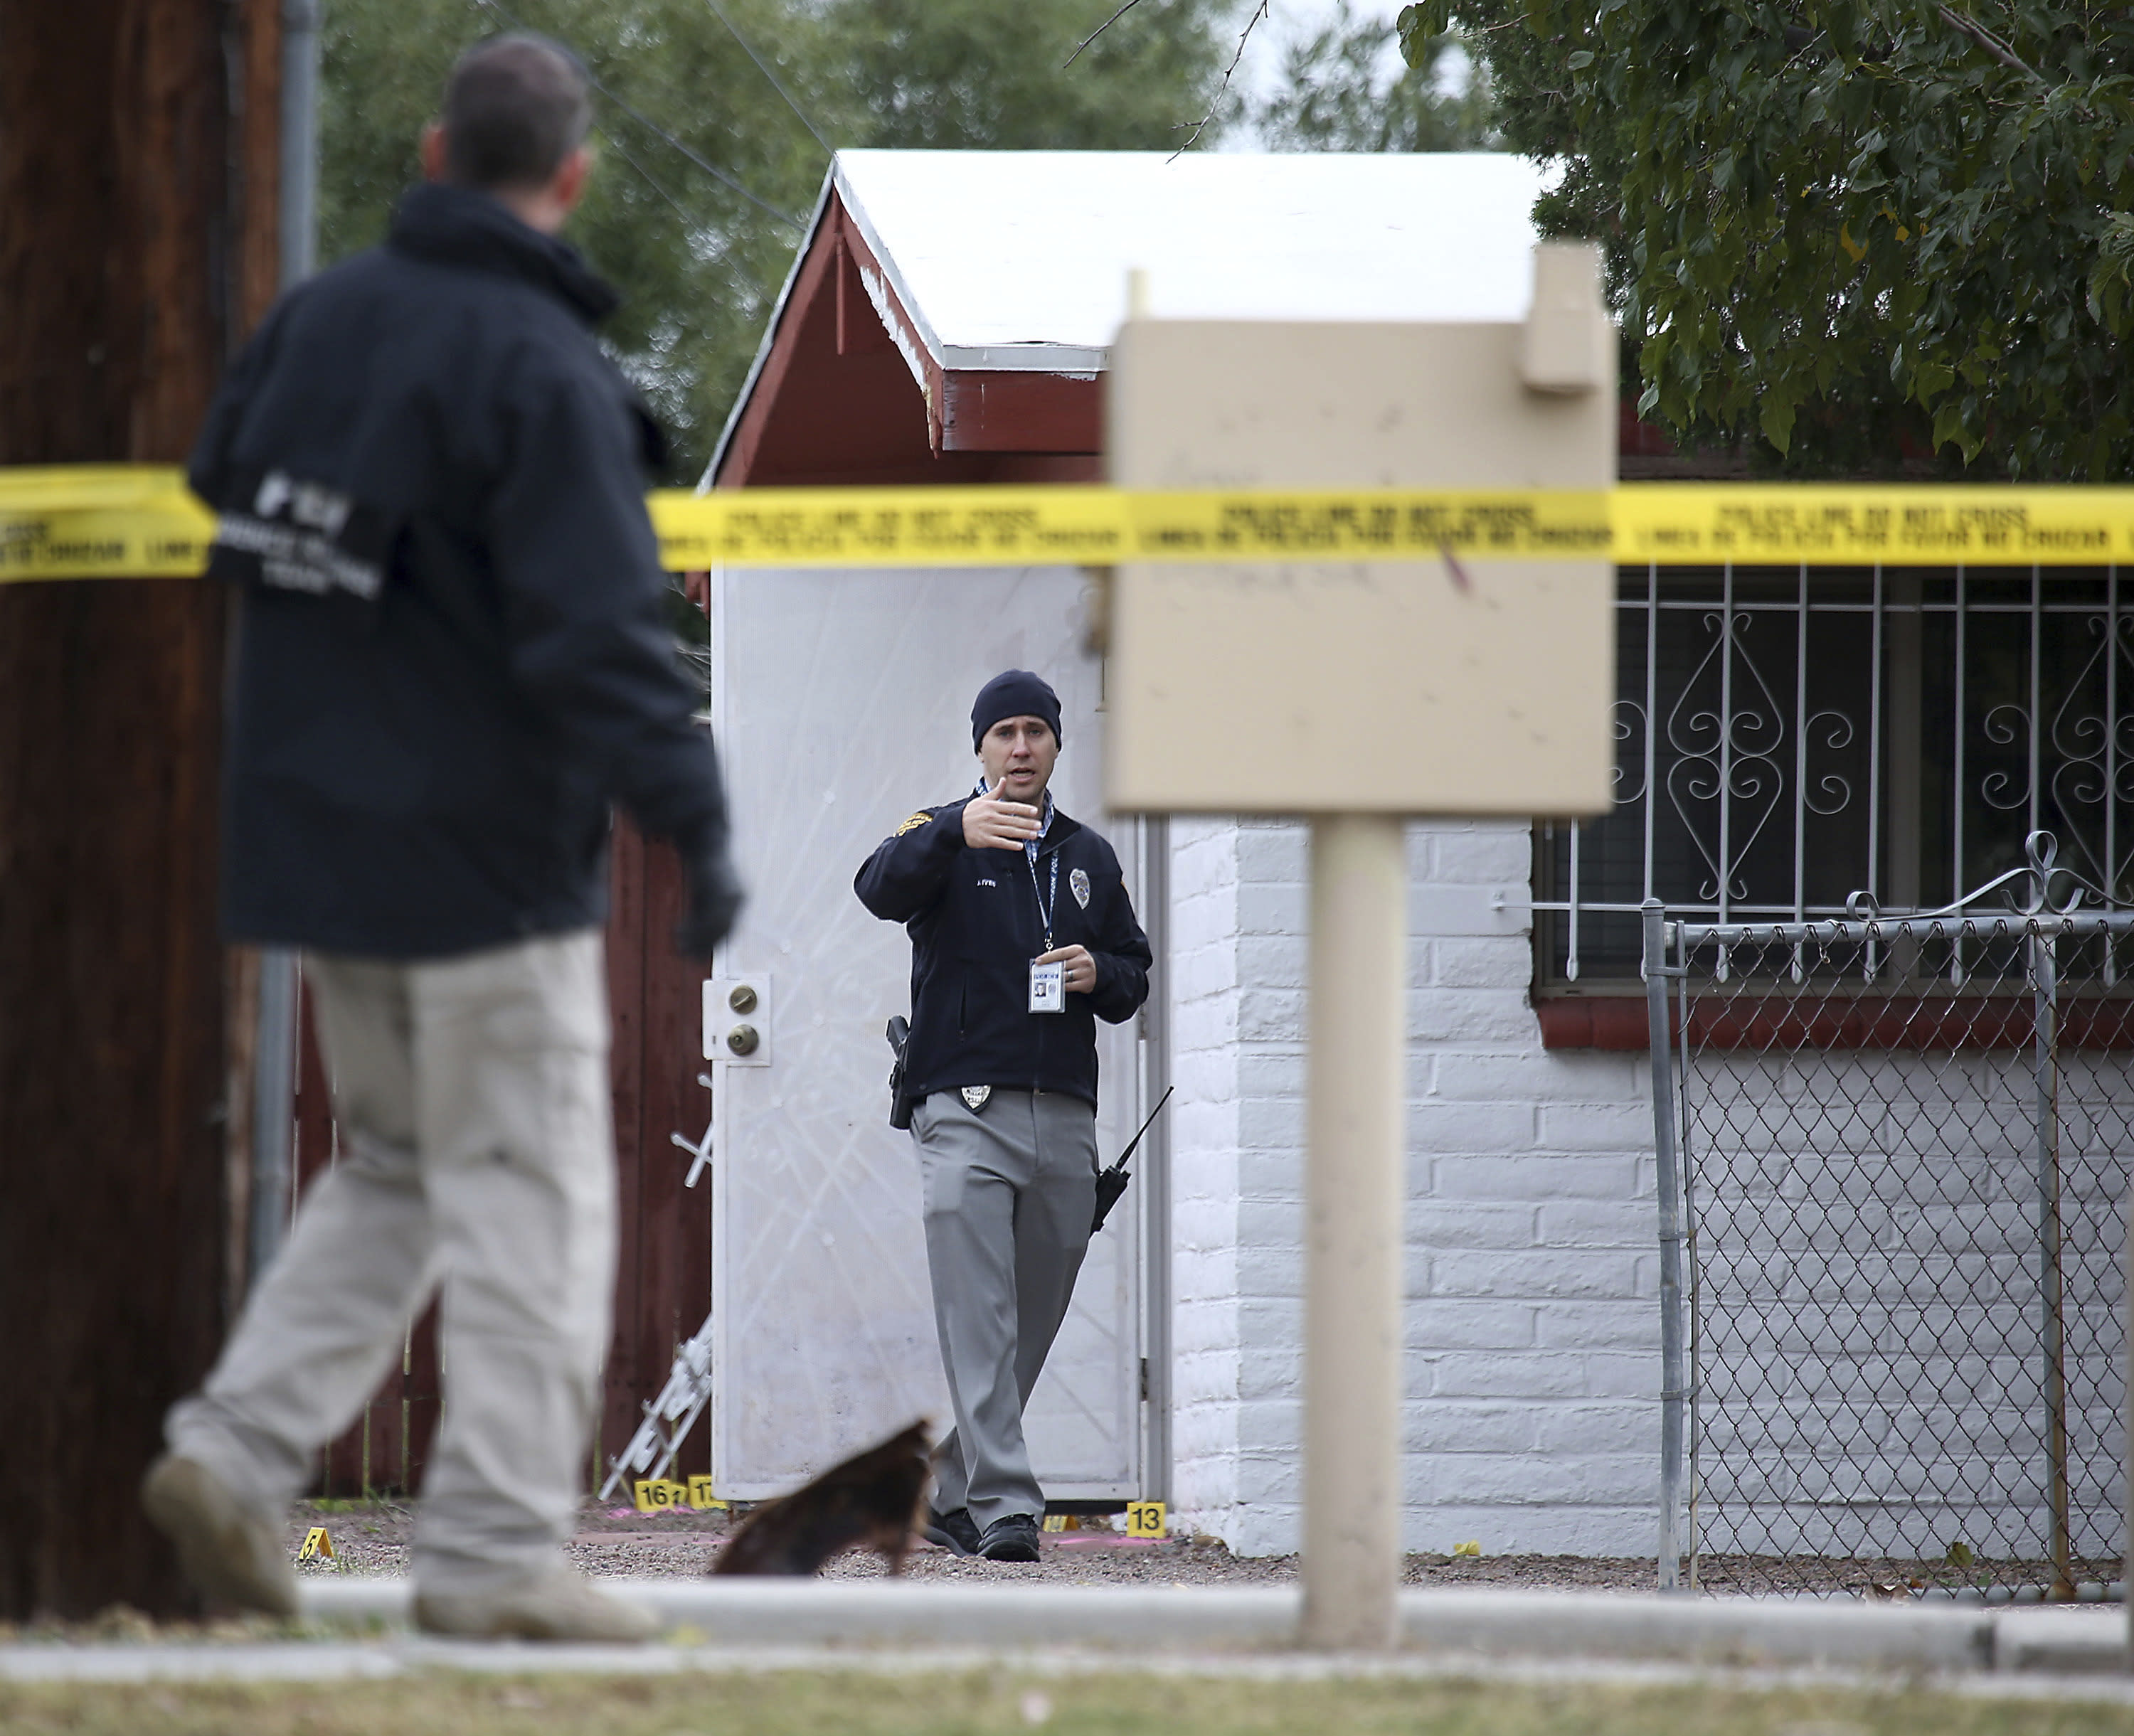 Law enforcement personnel continue their investigation at the scene following a shooting Friday, Nov. 30, 2018, in Tucson, Ariz. A deputy U.S. marshal serving a felony arrest warrant was shot and killed outside the Tucson house the night before. The suspect was arrested after an hour-long standoff at the home. (Ron Medvescek/Arizona Daily Star via AP)